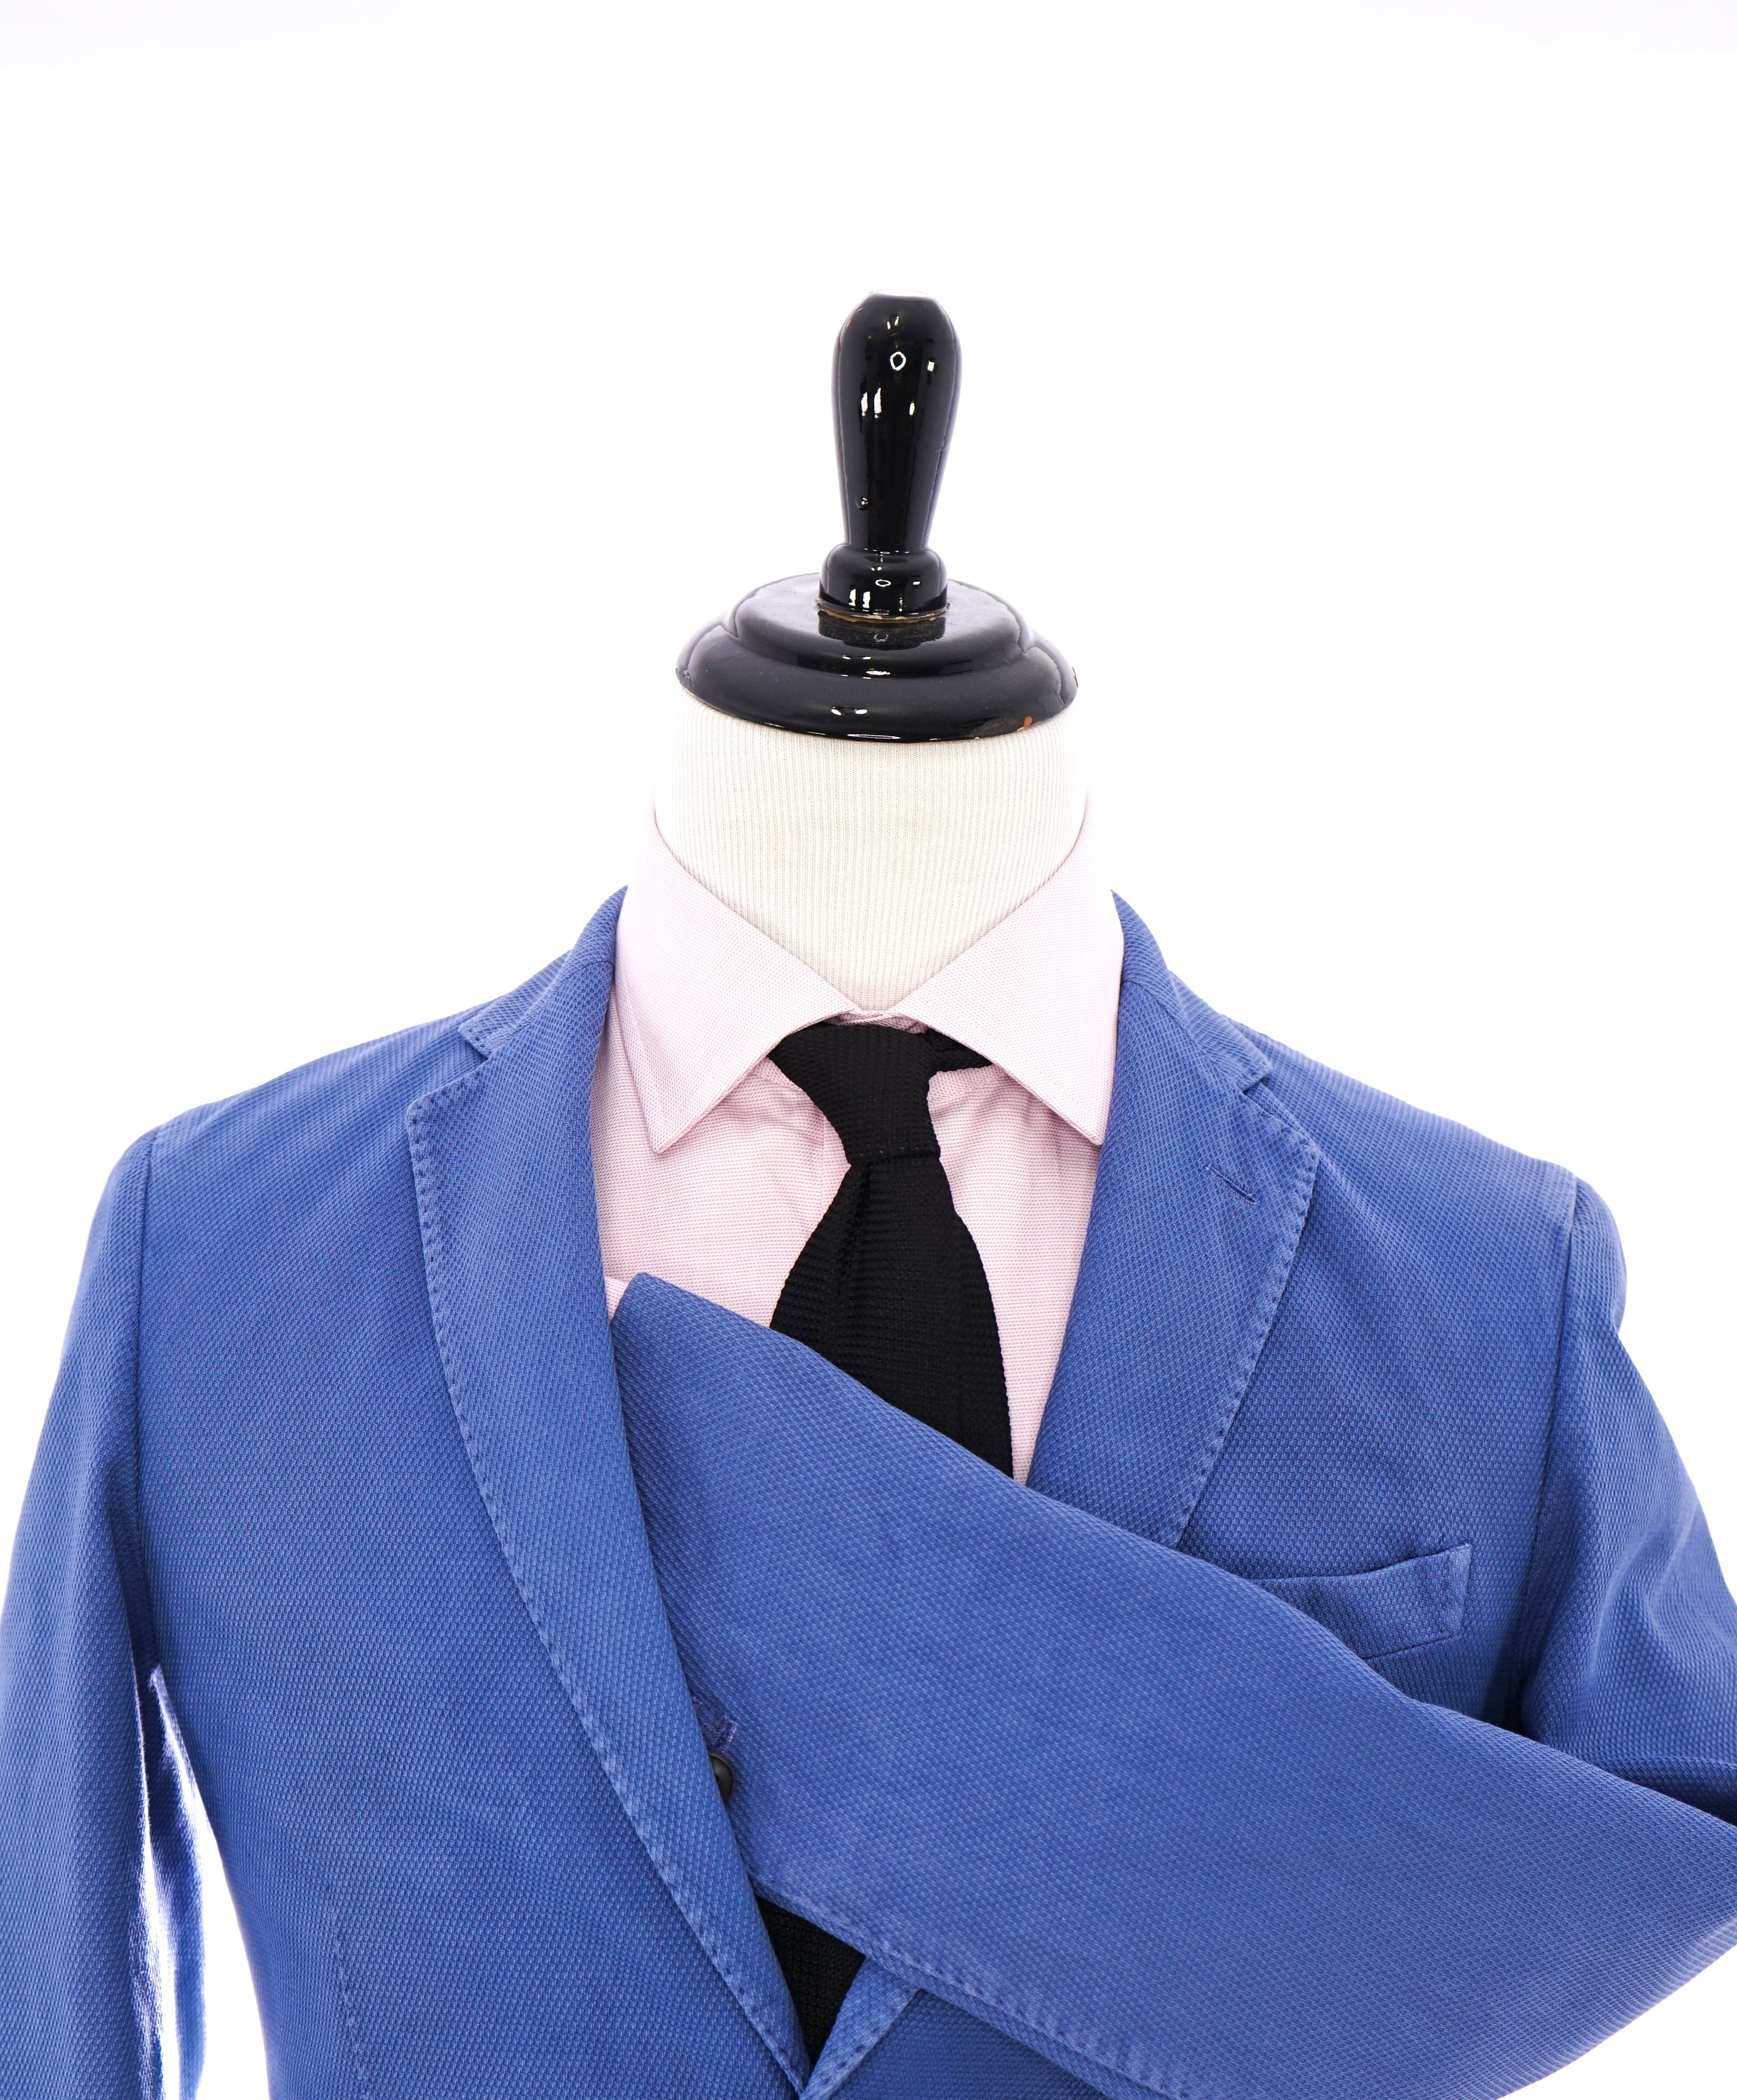 BOGLIOLI - Milano Semi-Lined Deconstructed Blue Textured Cotton Suit- 38R